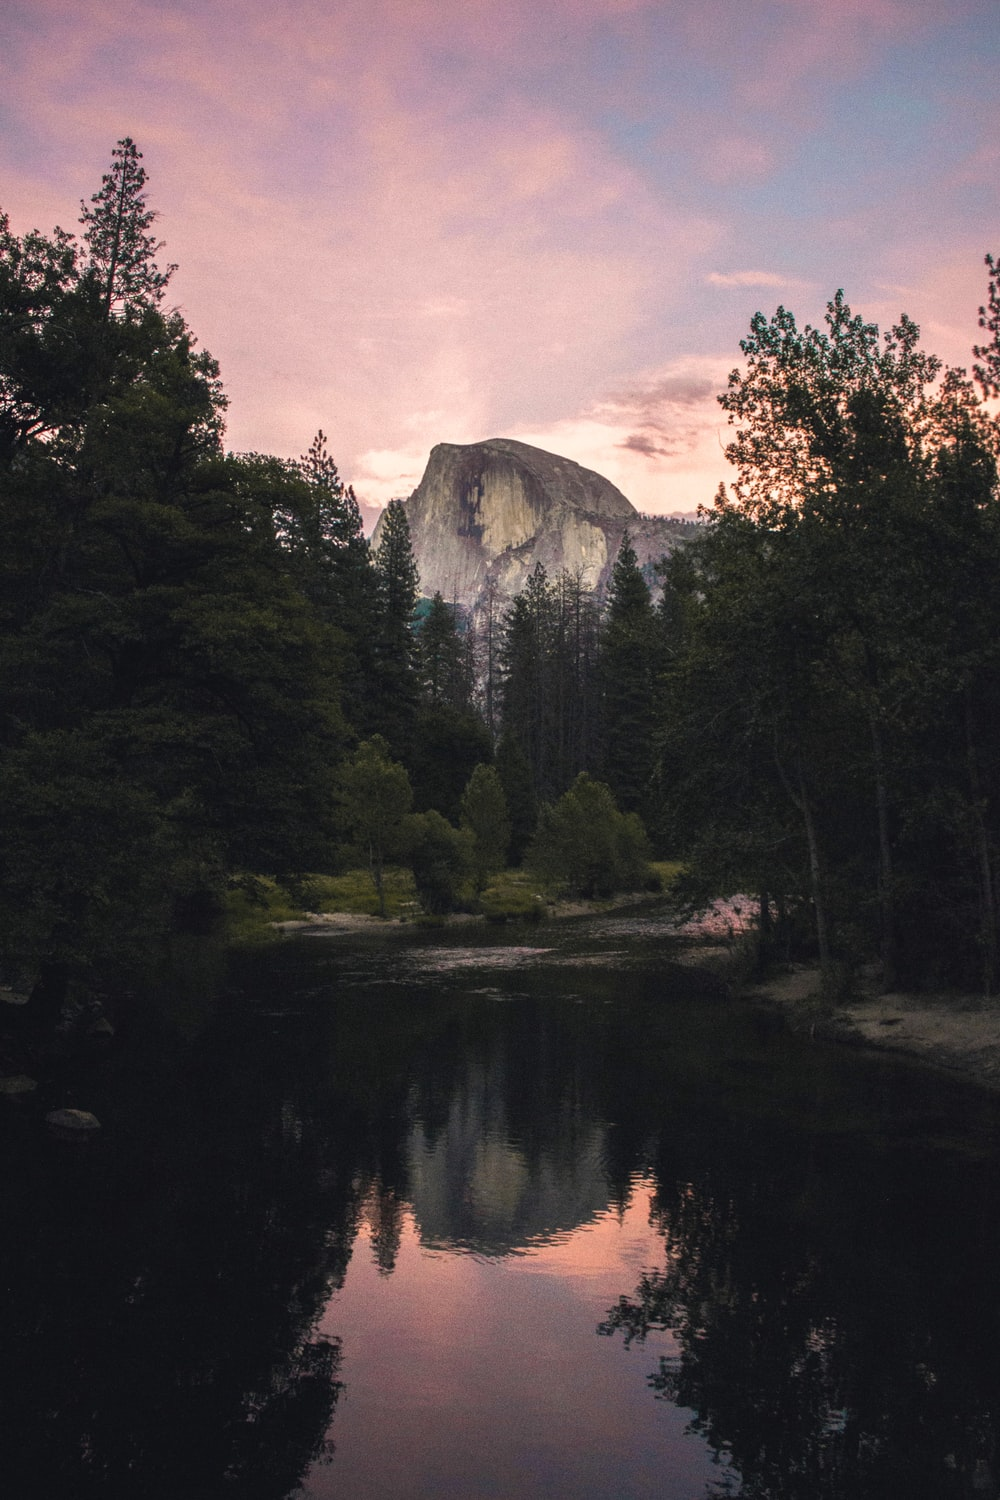 calm body of water near trees and mountain